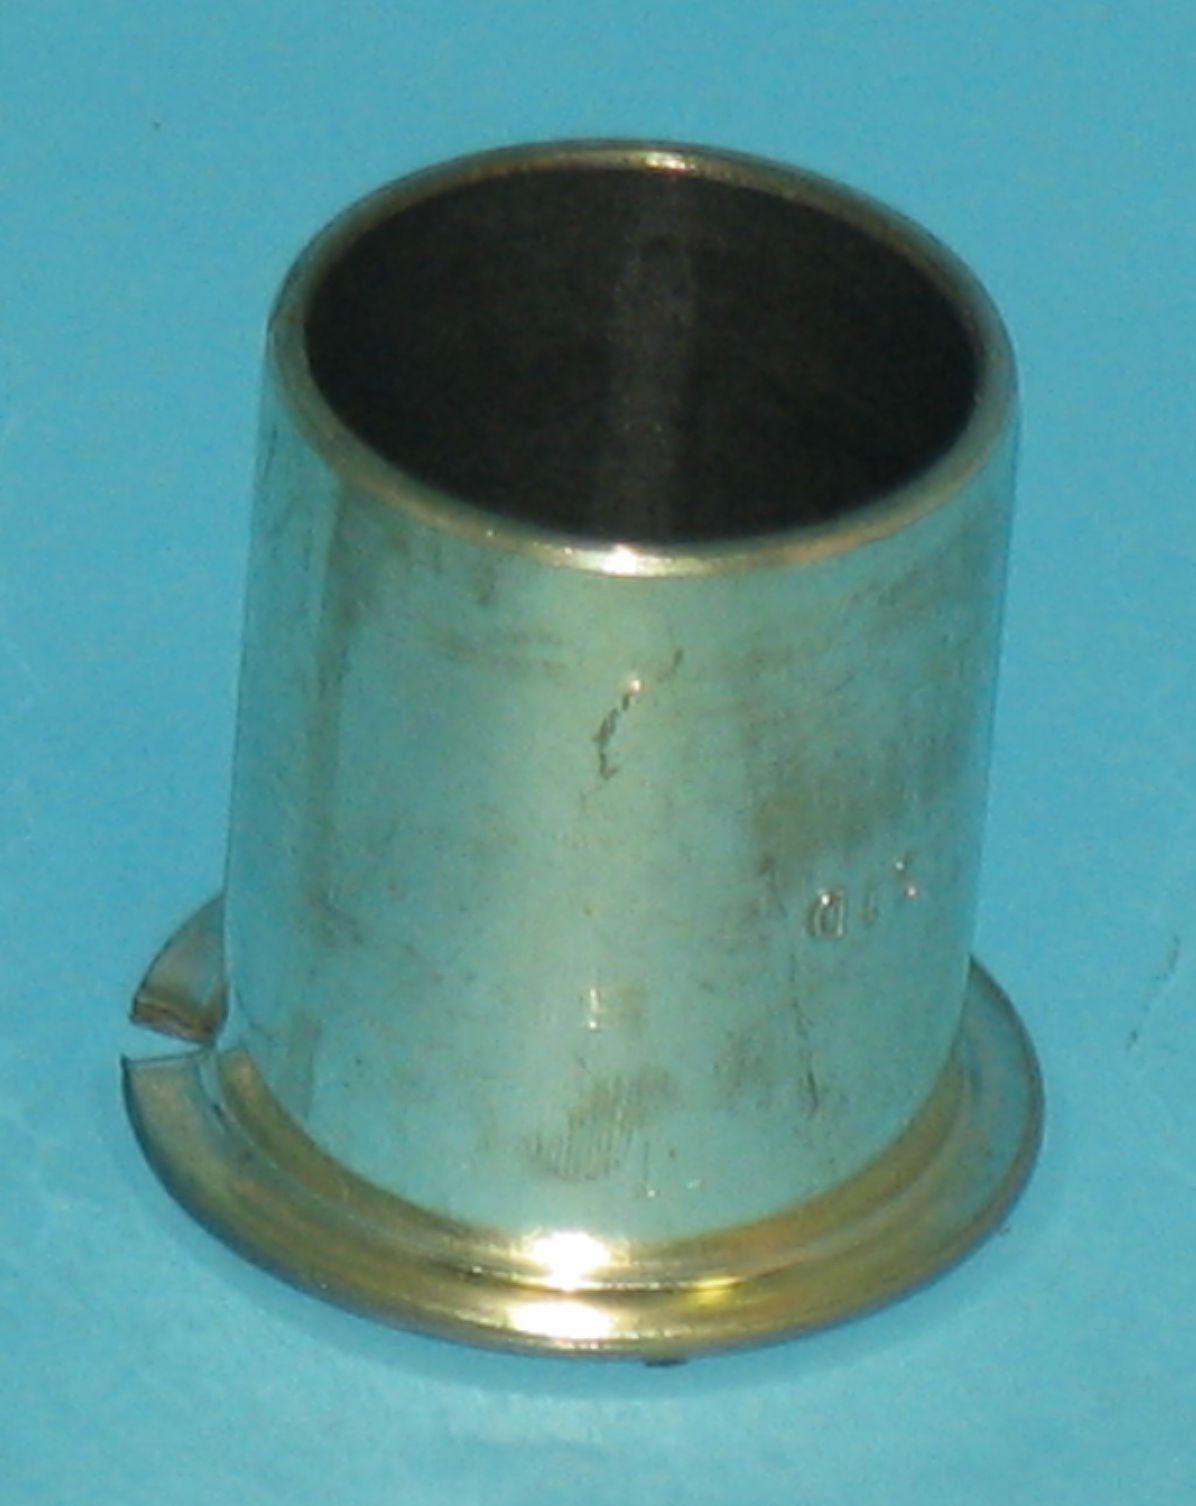 BRG-2595 Bushing; Center Main R/N 035-0256-00